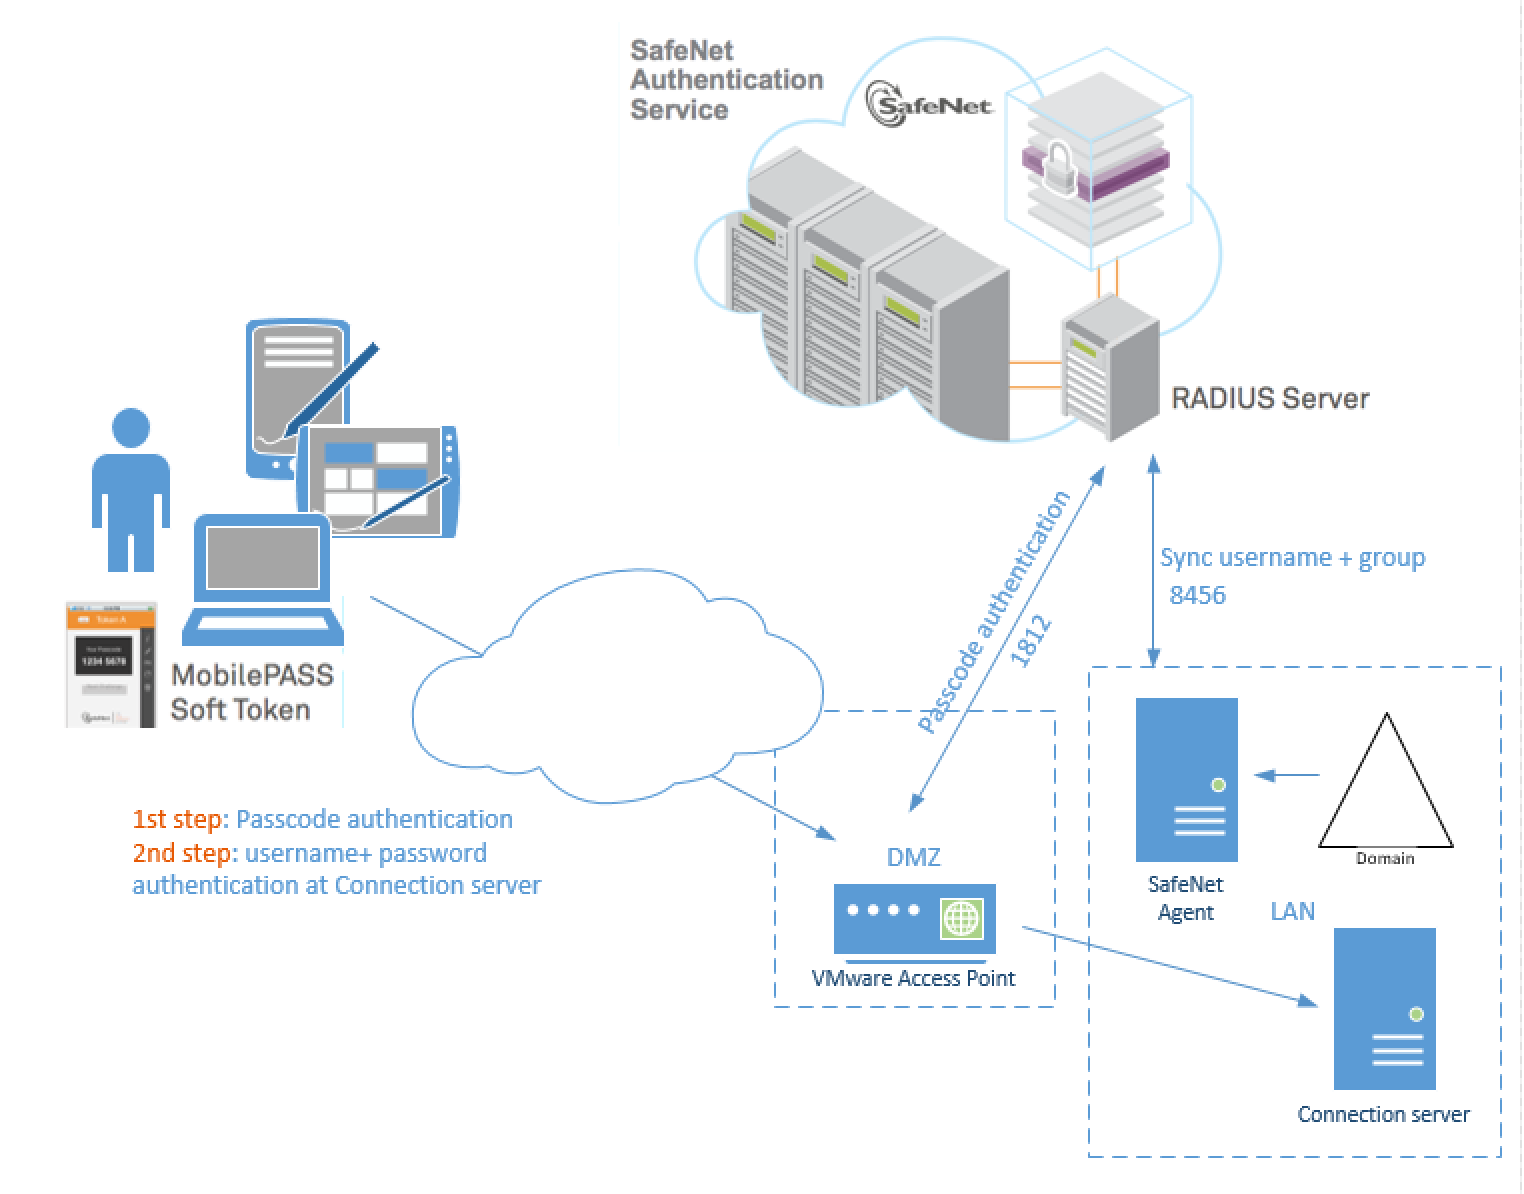 VMware Access Point Radius two-factor authentication with SafeNet (SAS)